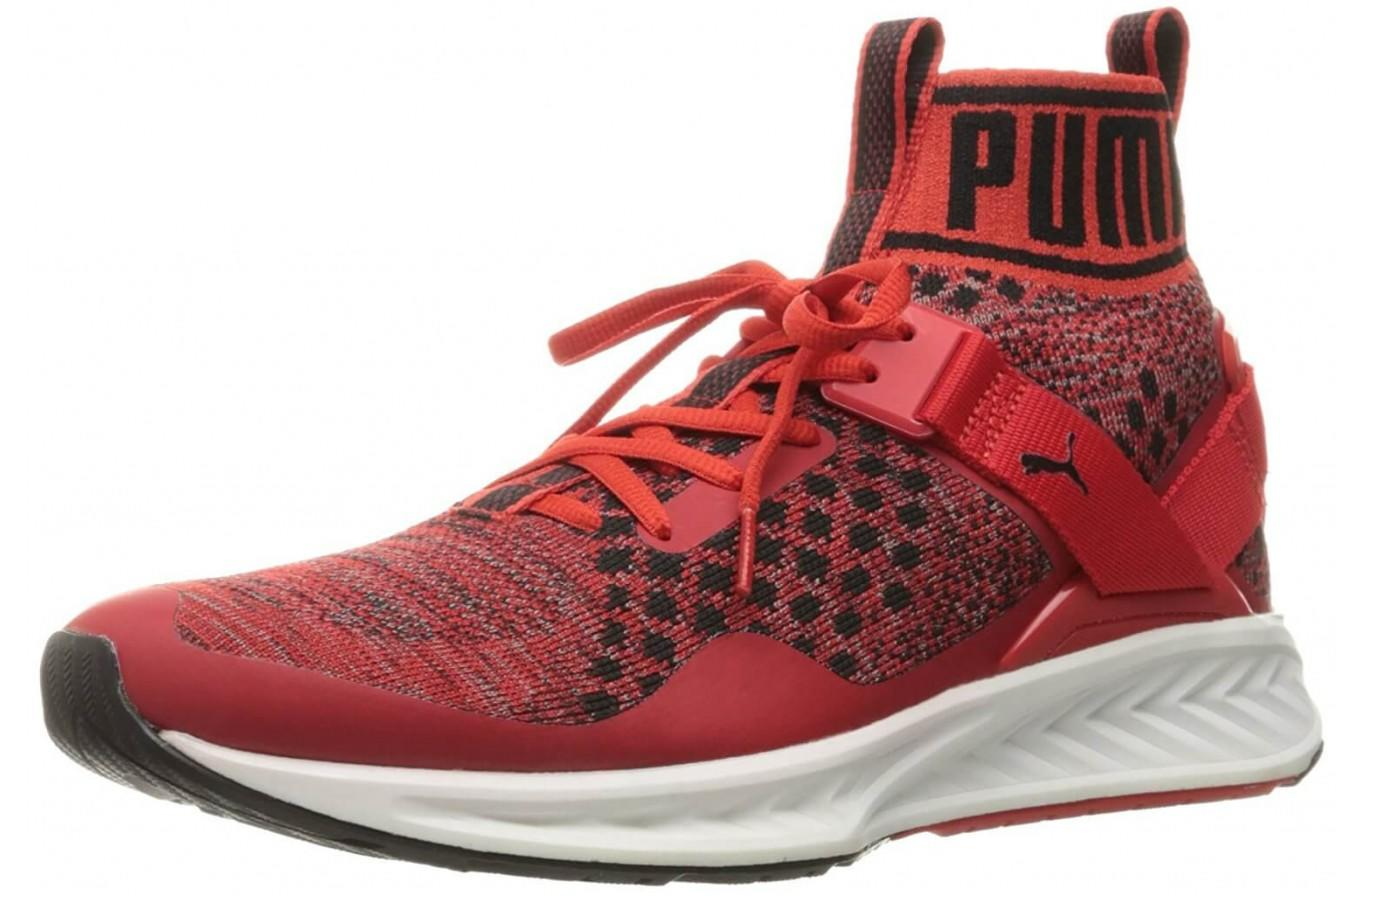 outlet store 2bc96 4eee8 Puma Ignite evoKnit Fully Reviewed